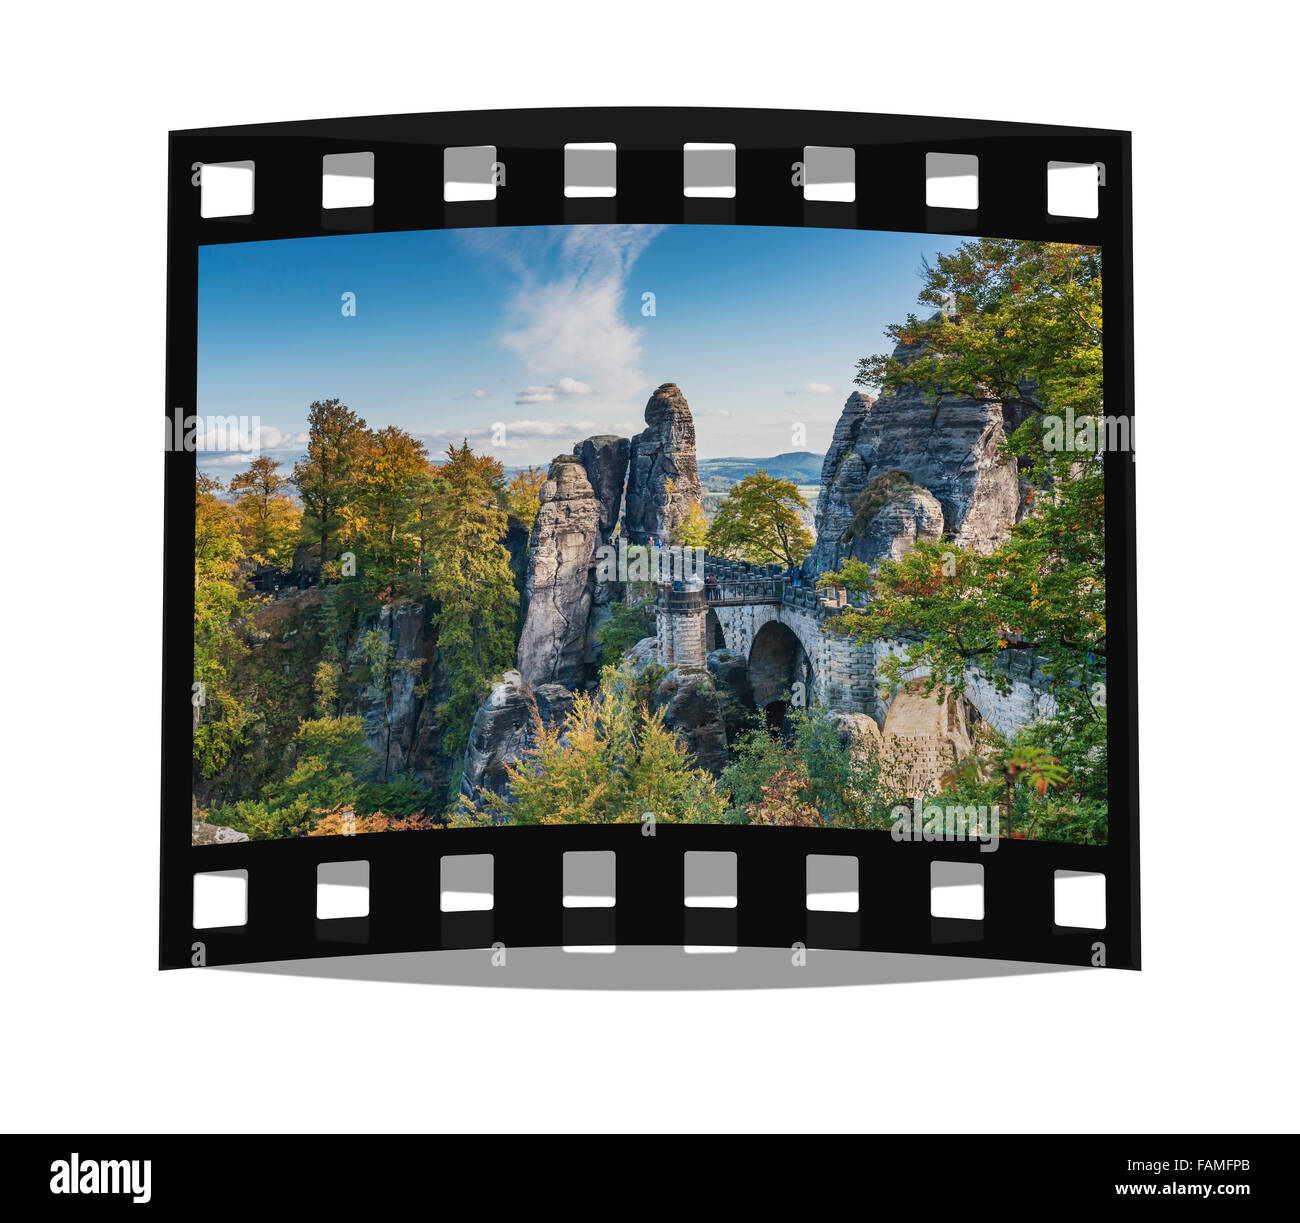 View to the Rock formation Bastei (Bastion), Saxon Switzerland, Elbe Sandstone Mountains, Saxony, Germany, Europe - Stock Image